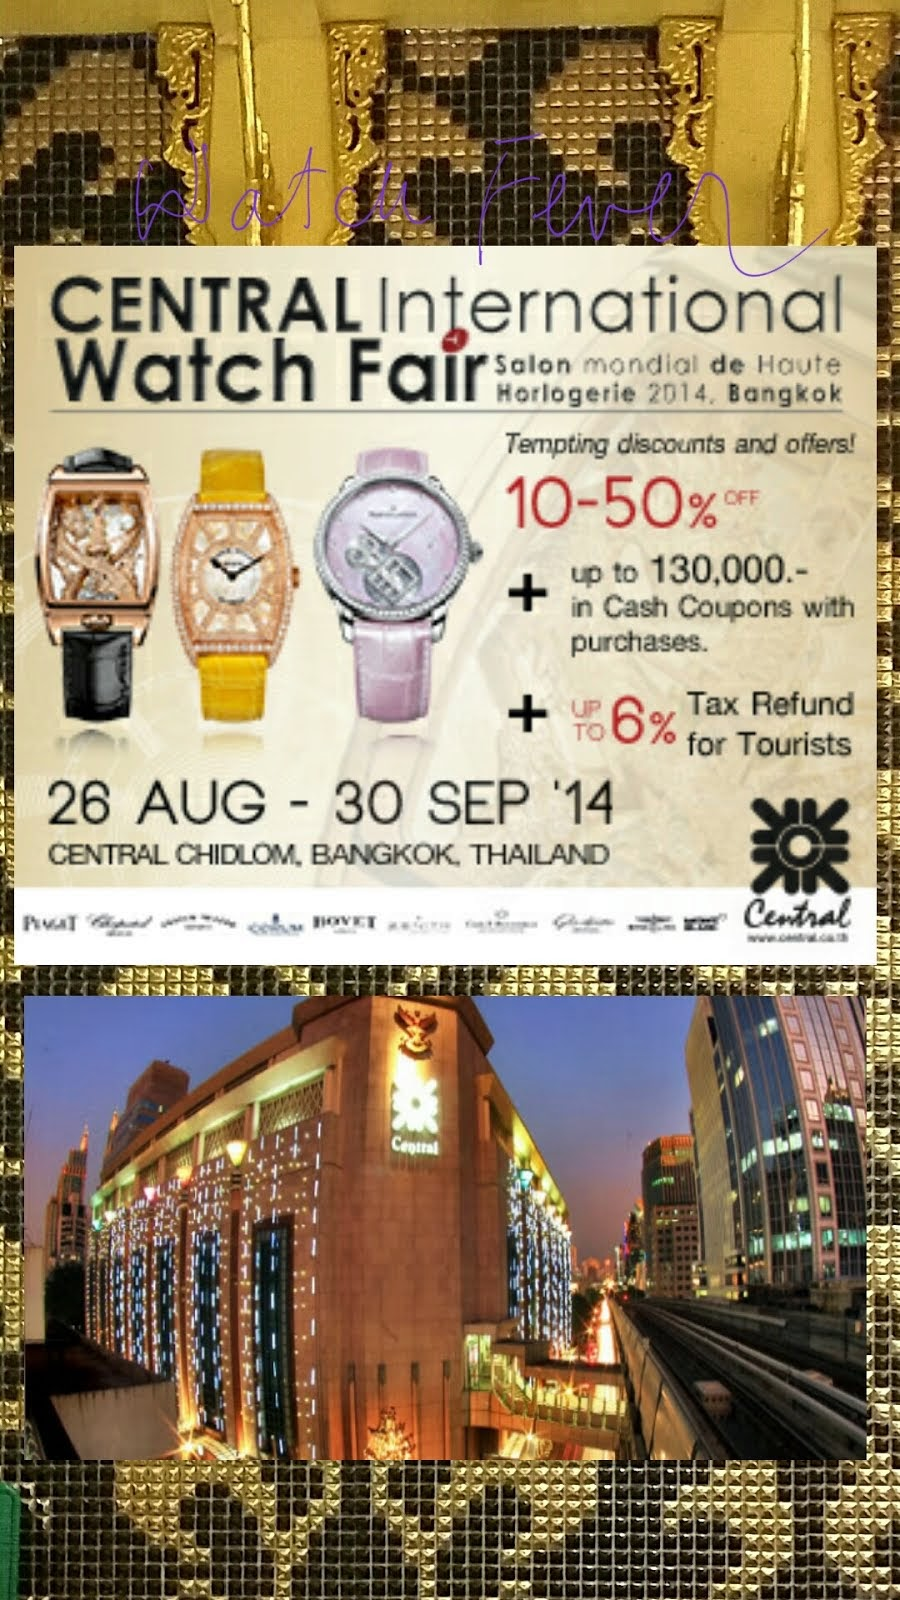 Central Intrnational Watch fair Chidlom, Bangkok